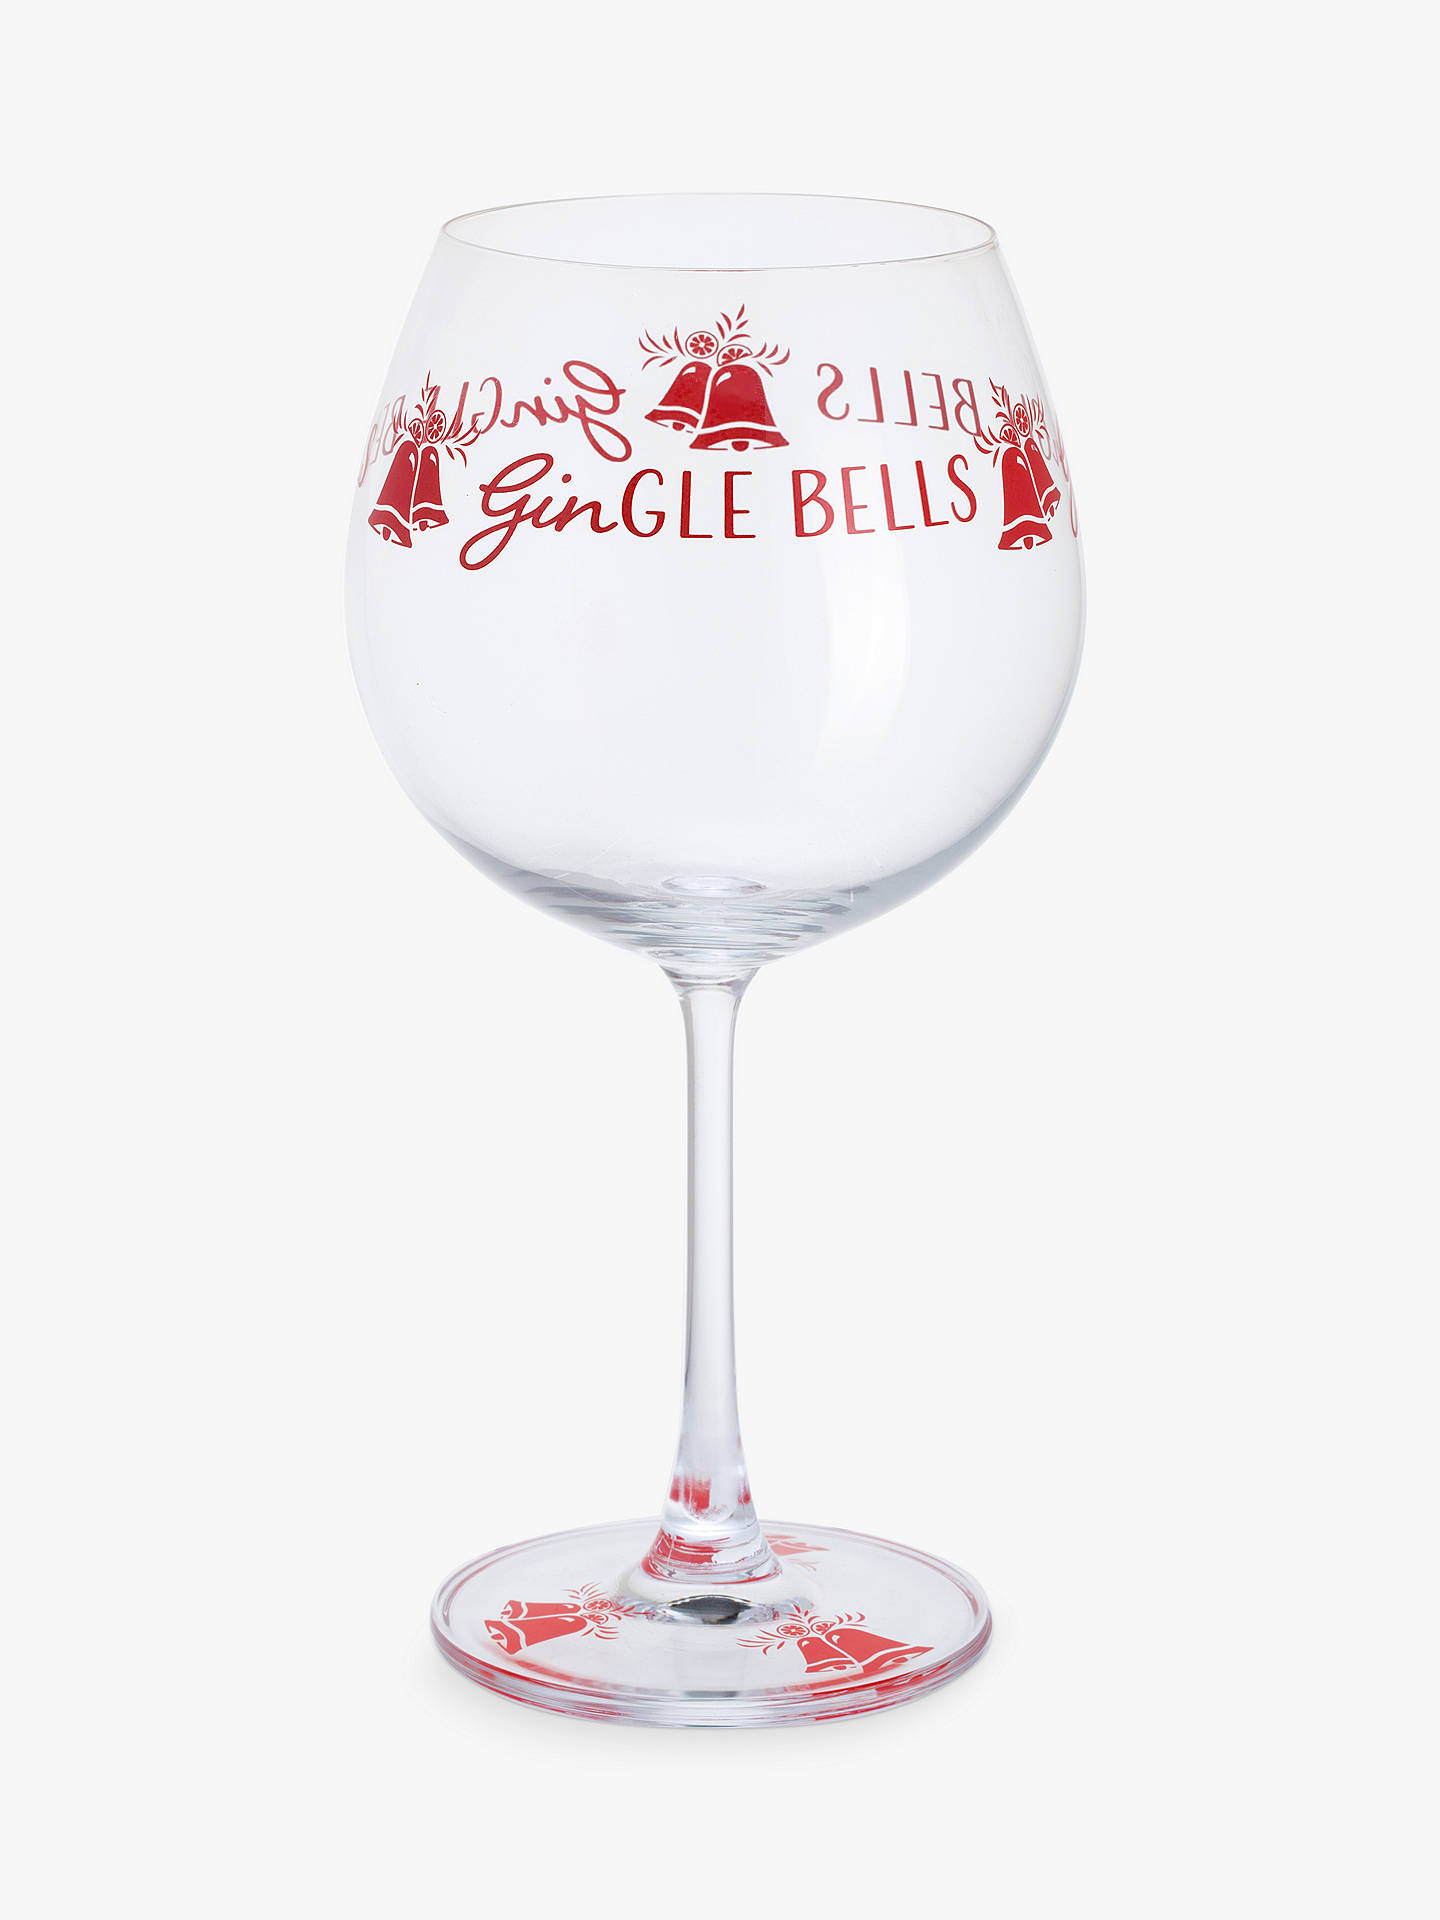 Dartington Crystal Gin Time Christmas Gle Bells Gl 640ml Clear Online At